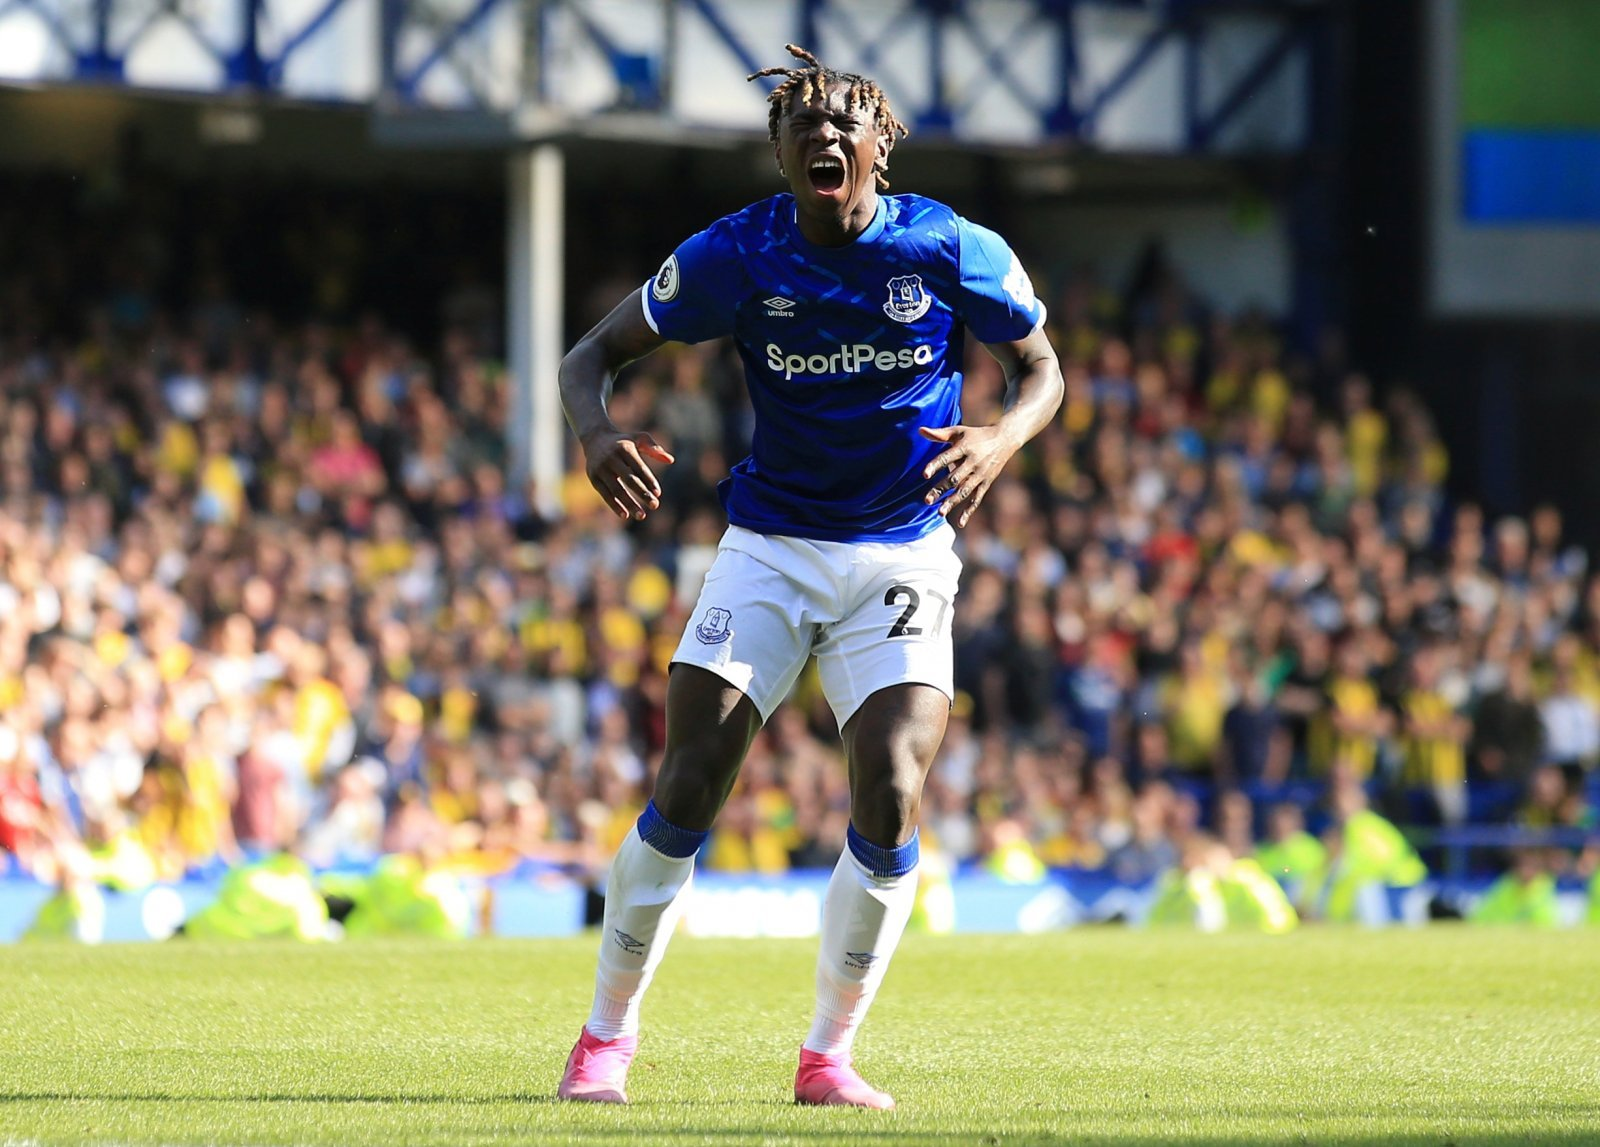 Everton: Mancini confirms Kean omitted from Italy squad as punishment